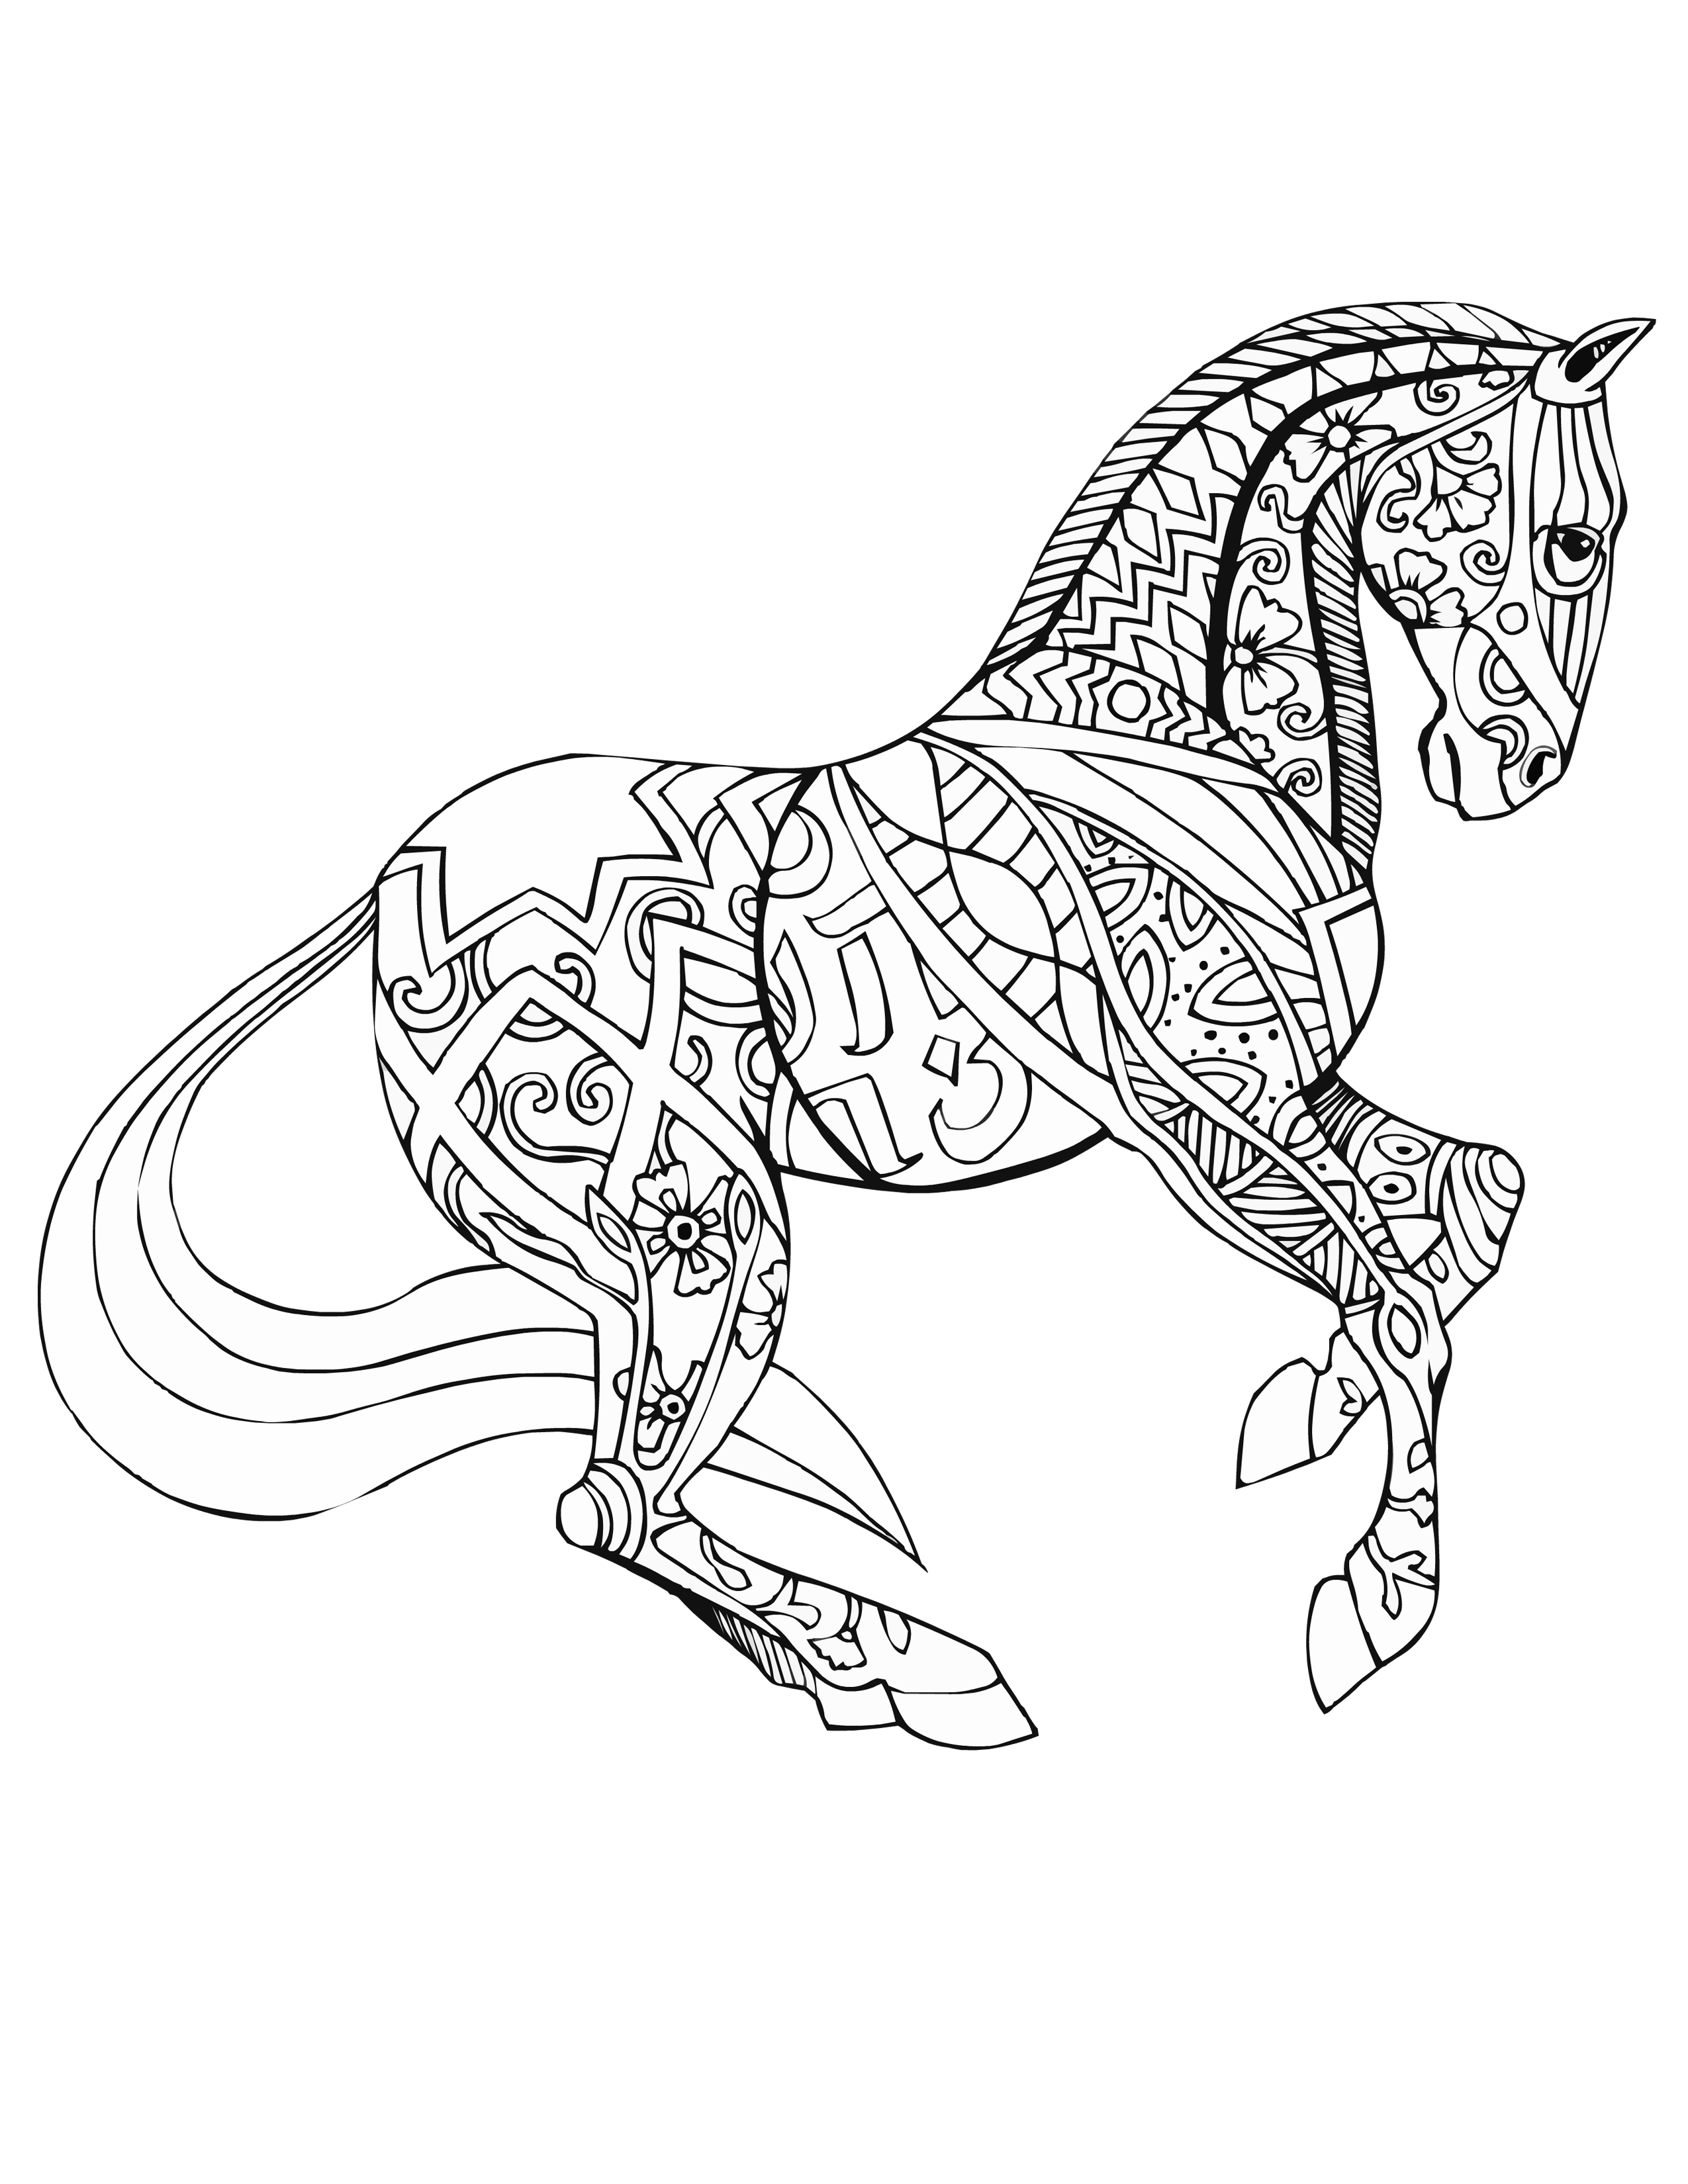 horse pictures to color fun horse coloring pages for your kids printable pictures horse to color